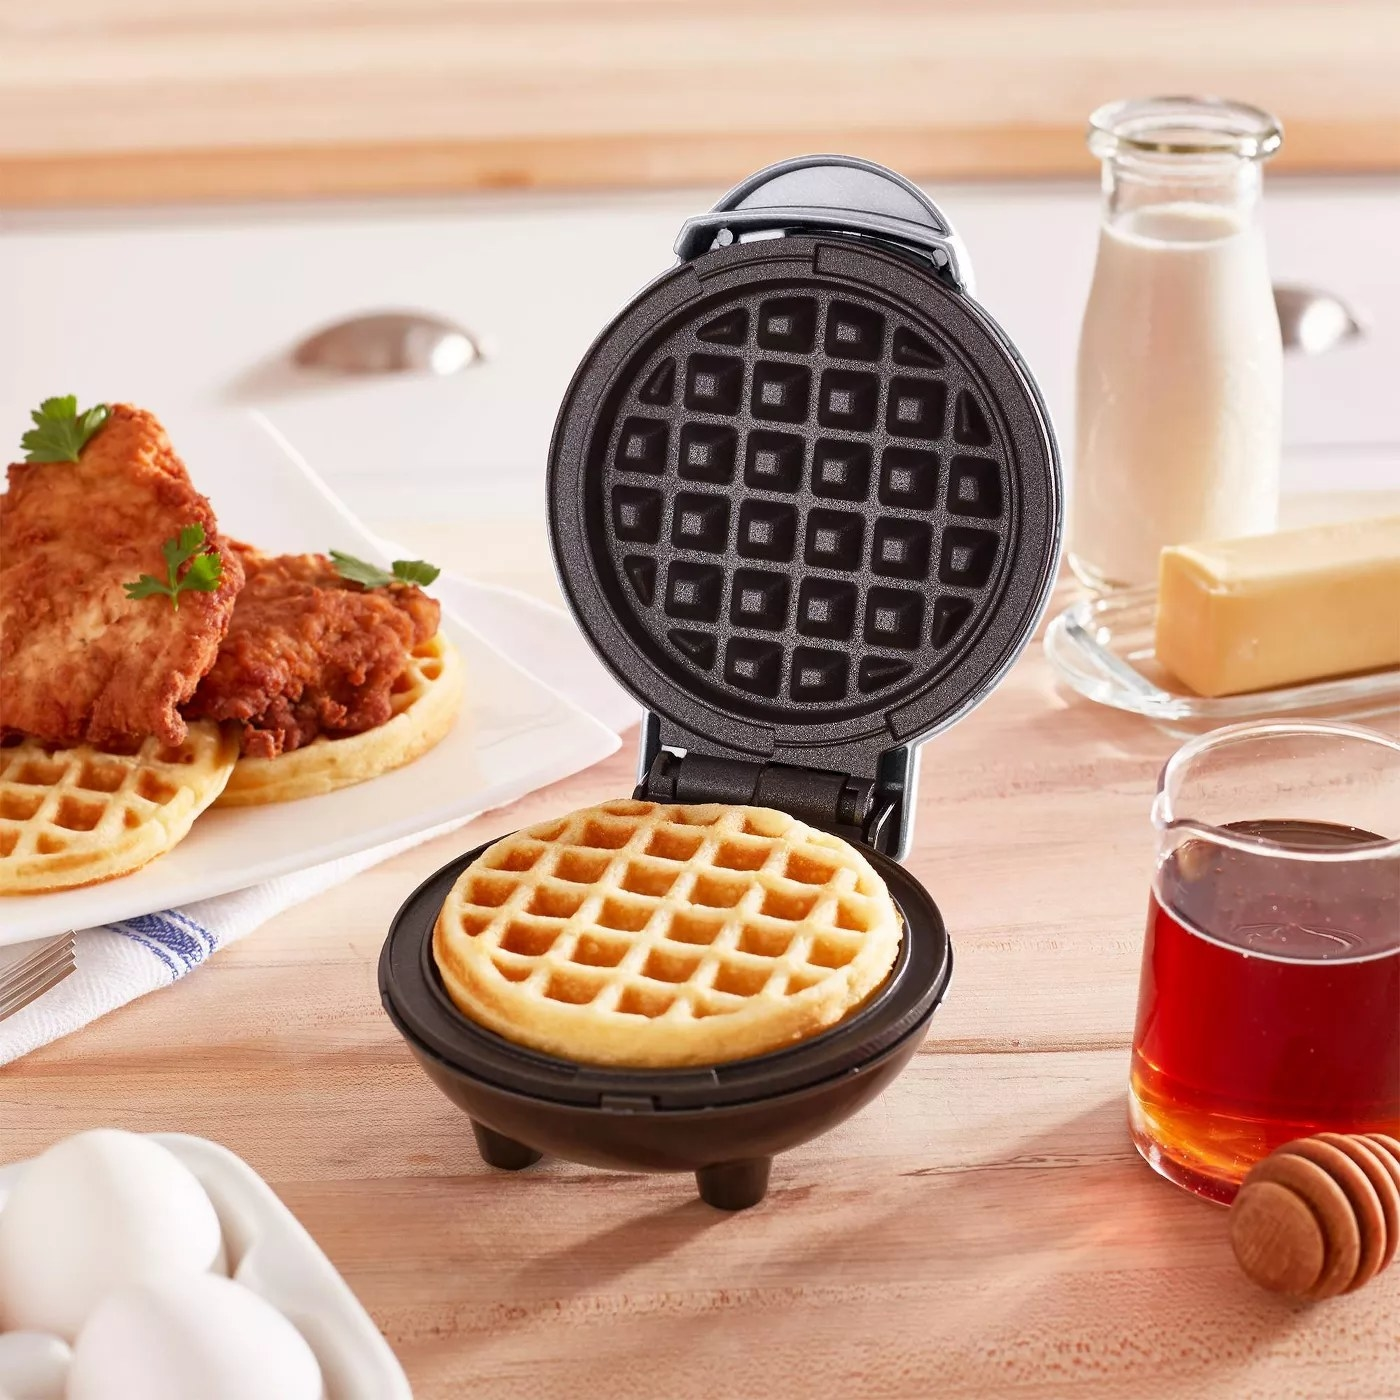 The open waffle maker with a 4'' waffle inside